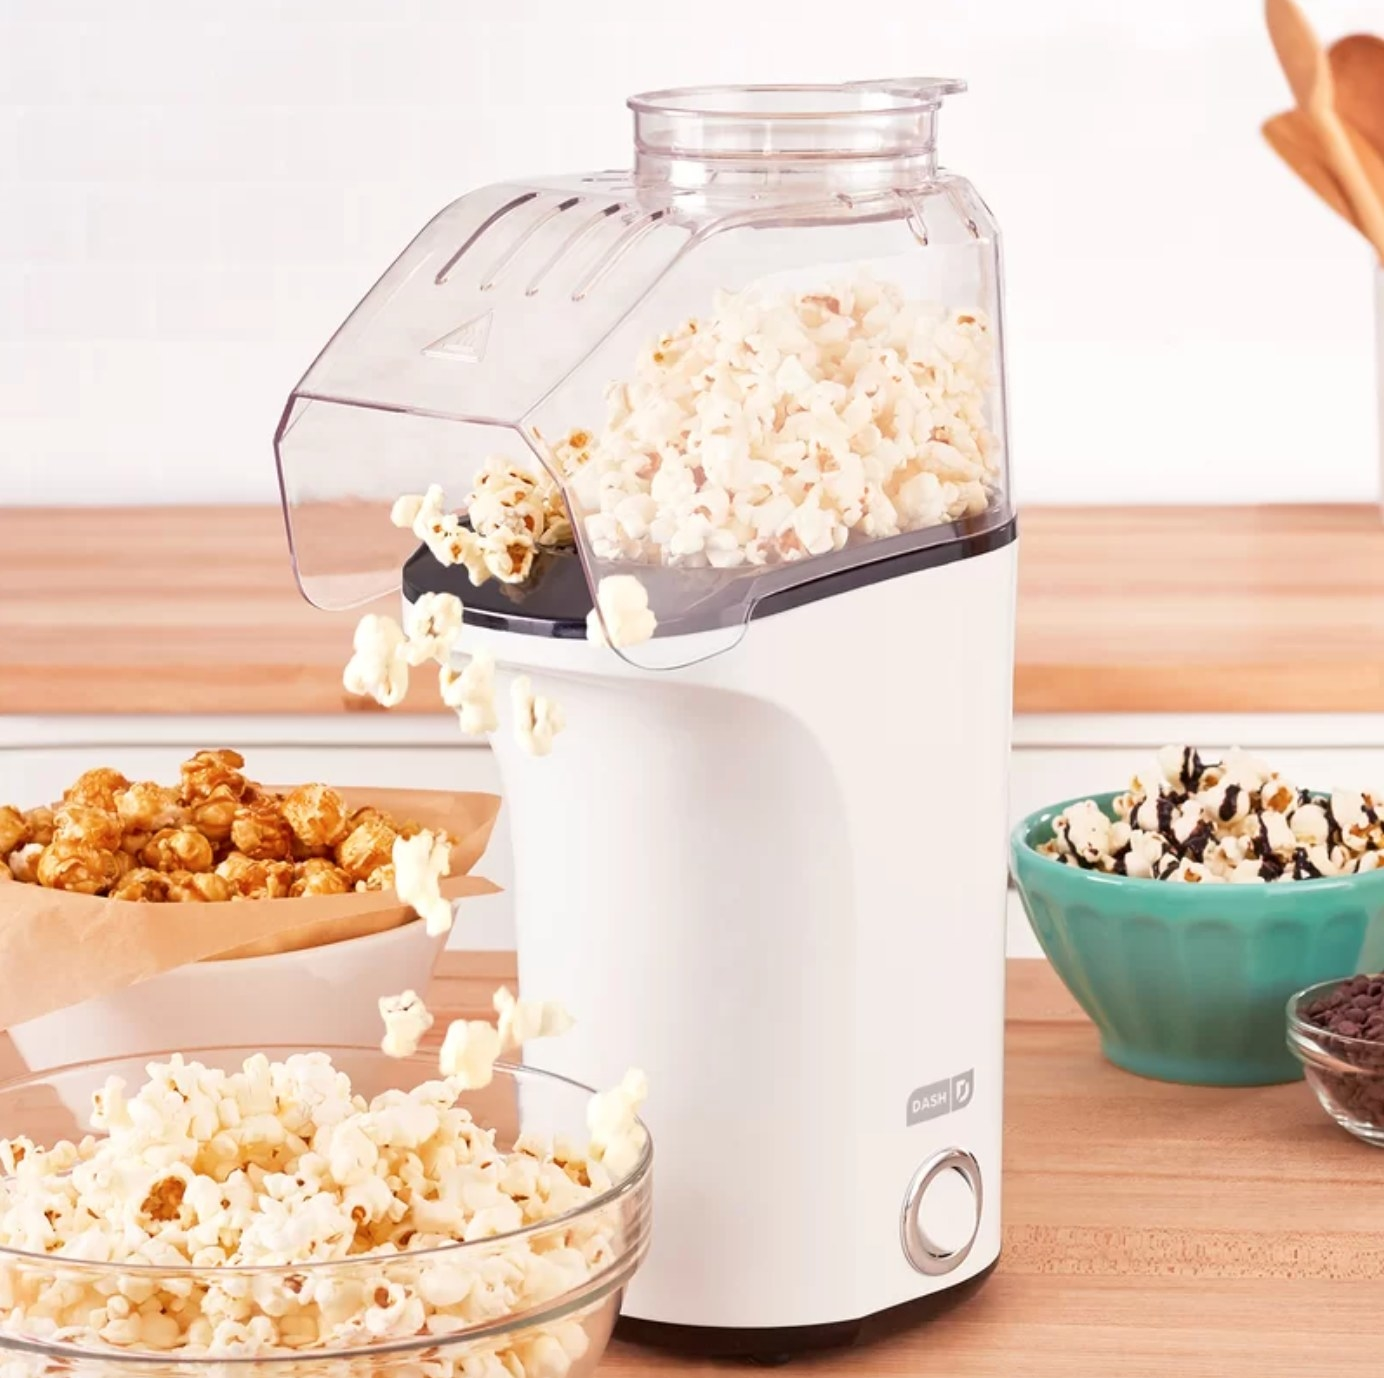 The hot air popcorn popper in white using hot air to pop the kernels